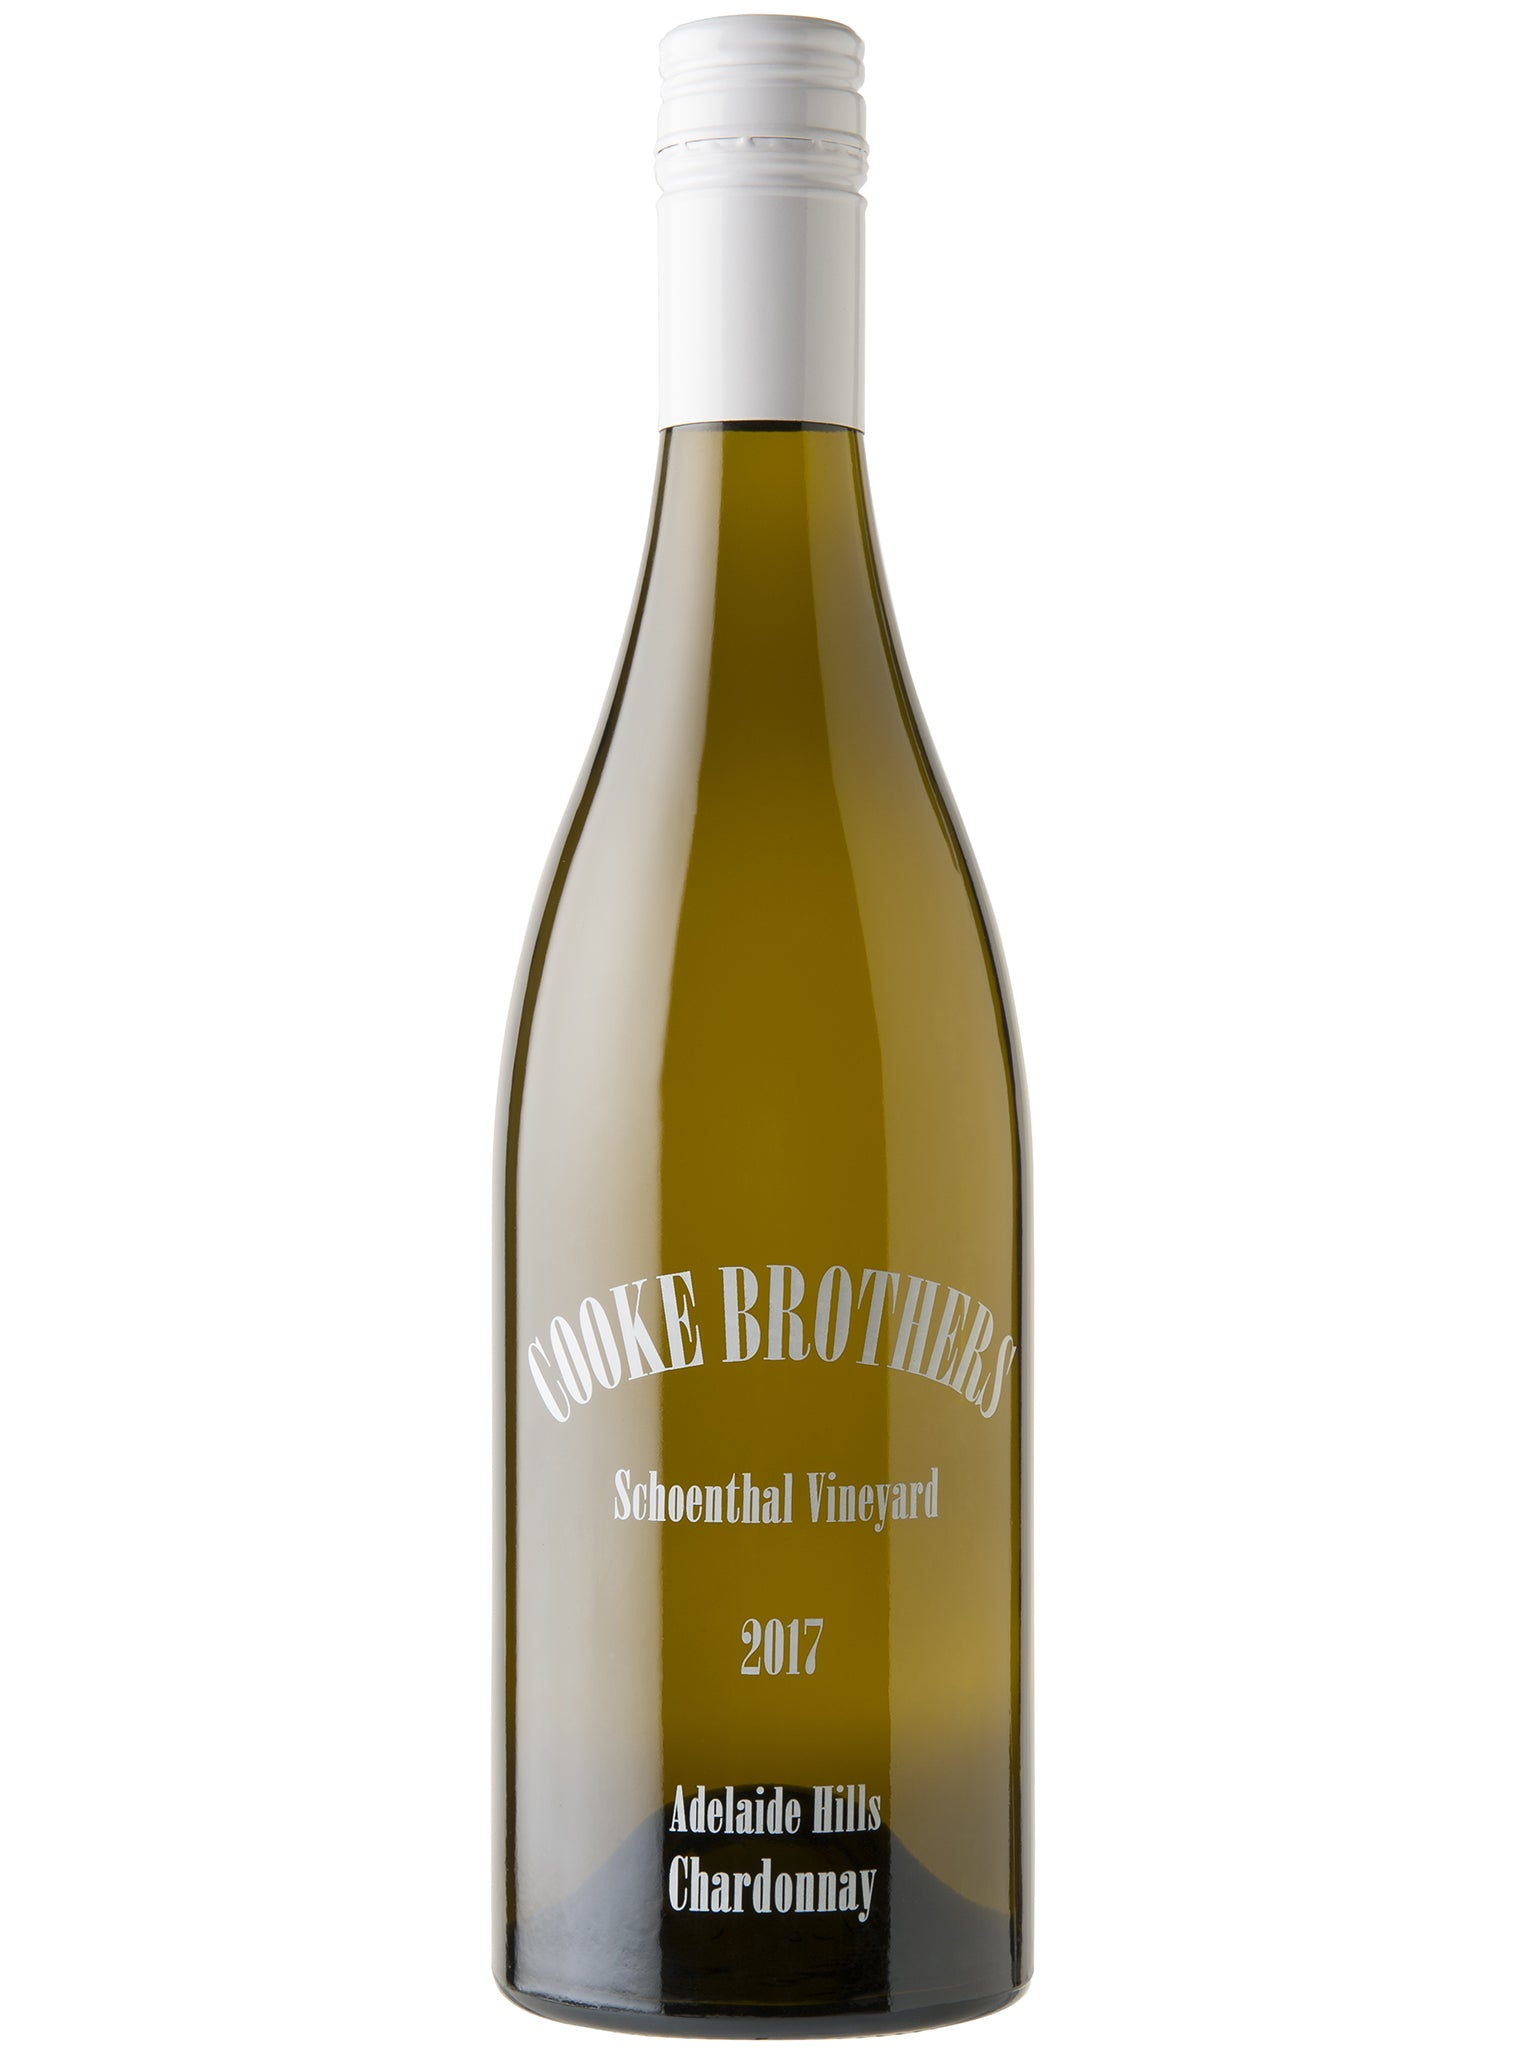 Cooke Brothers Shoenthal Vineyard Chardonnay 6pk 2017